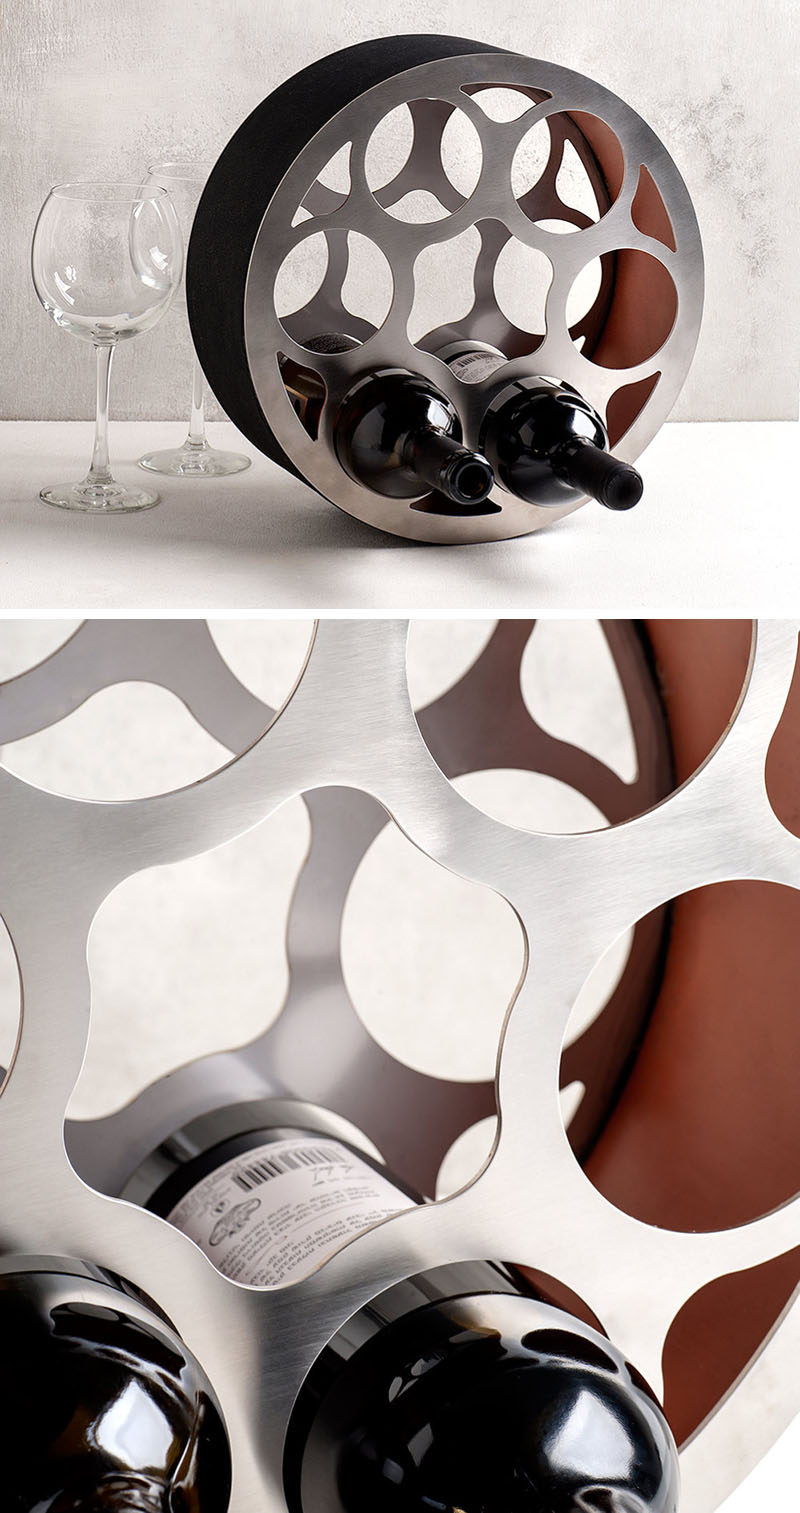 13 Wine Bottle Storage Ideas For Your Stylish Home // A steel wine wheel like this one adds a unique design piece to your home and creates a stylish spot to store your bottles.